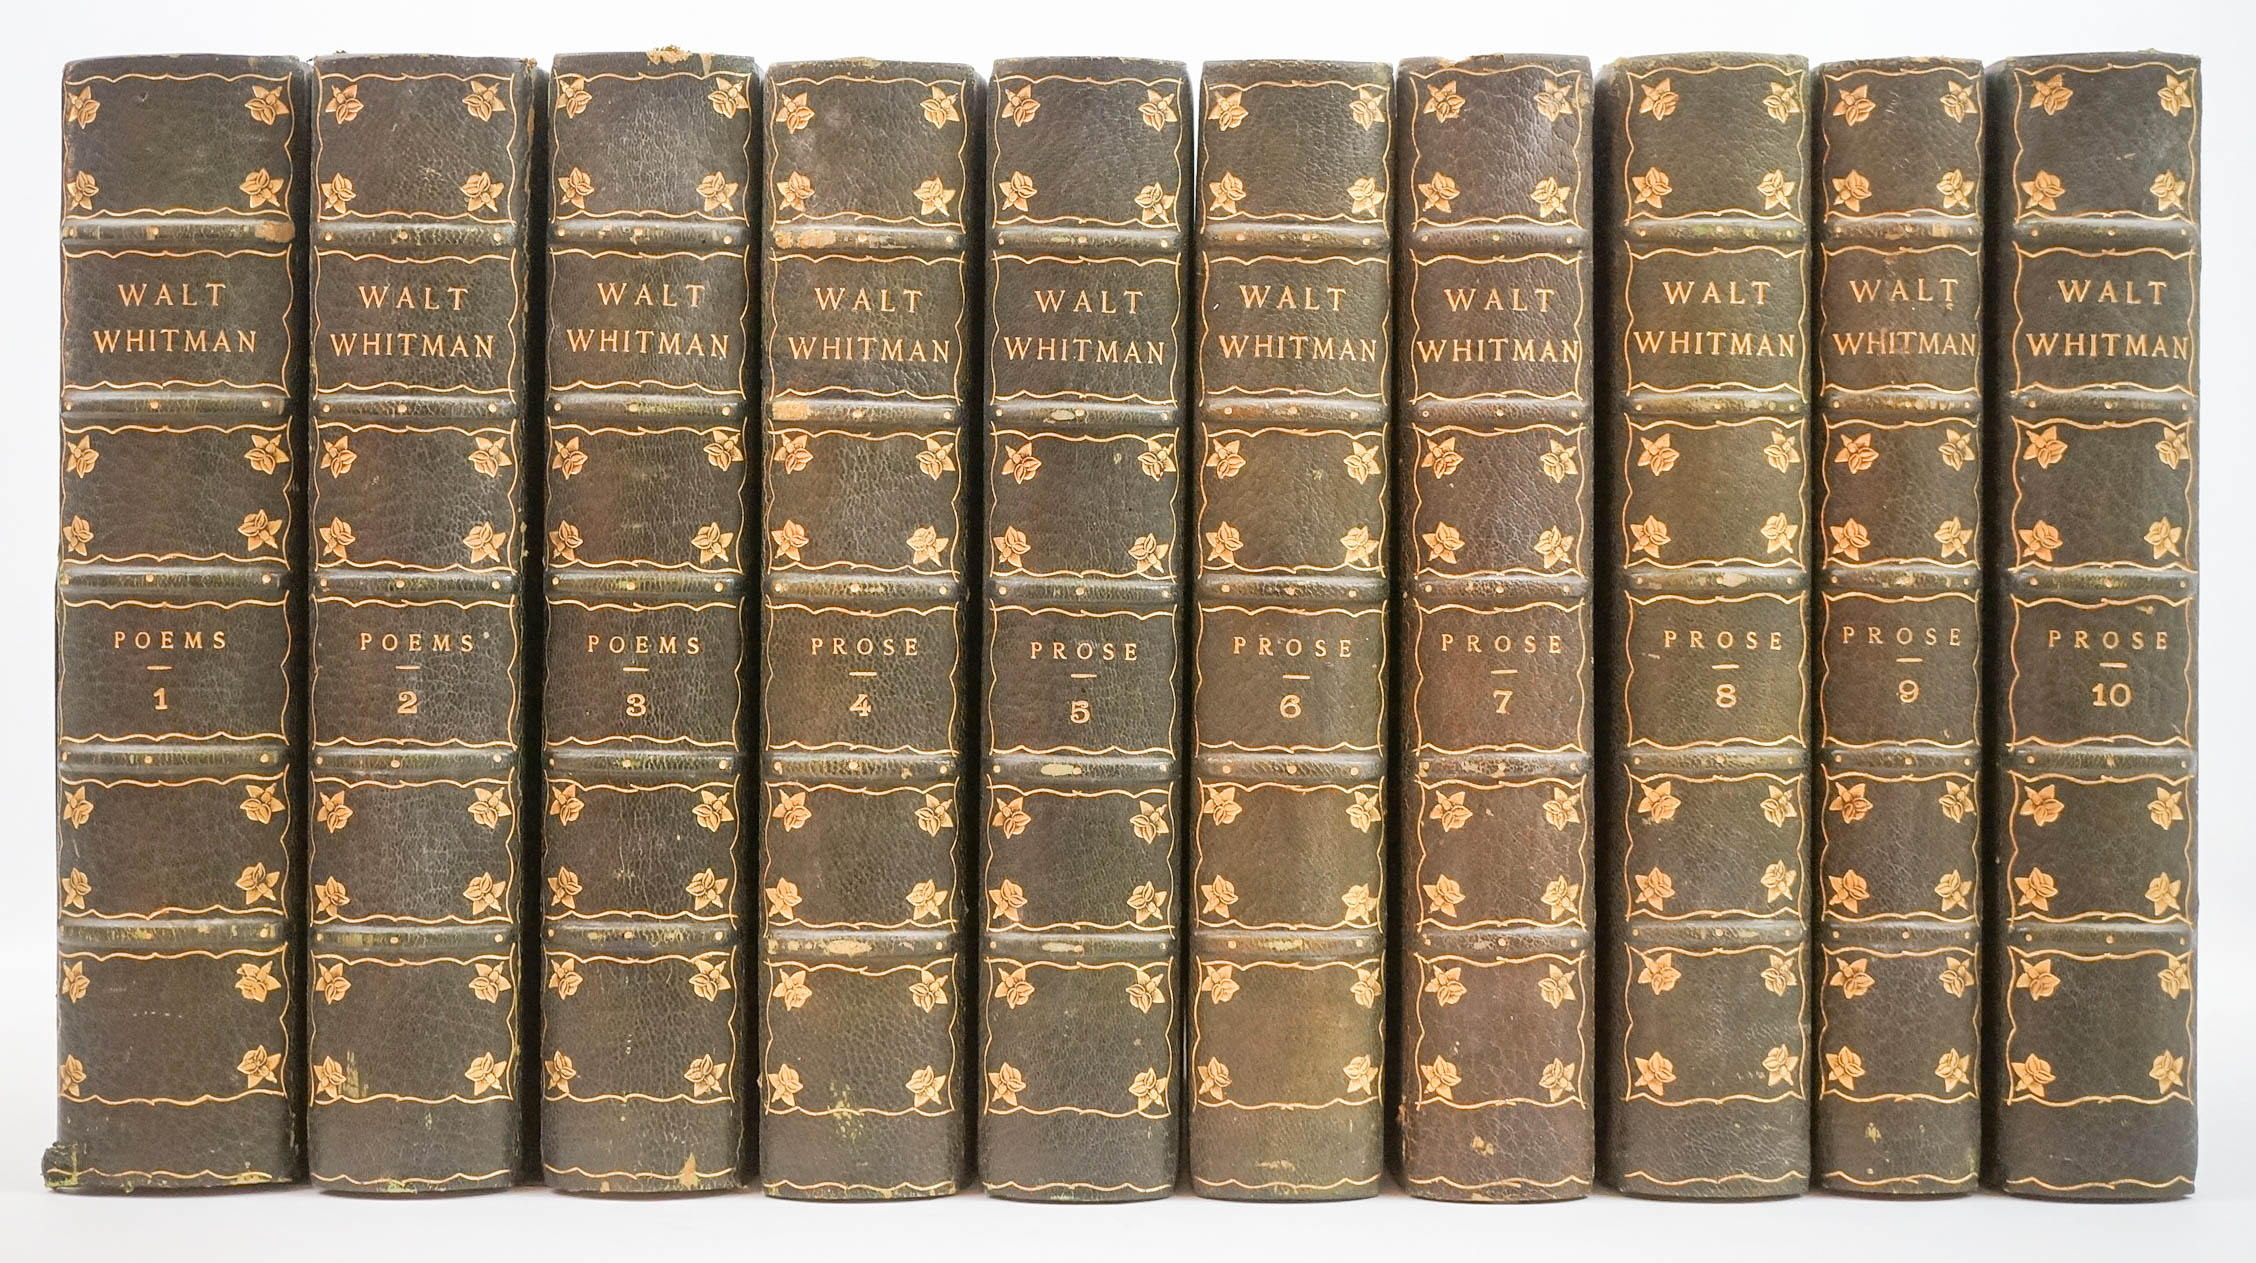 10 Volume Complete Works of Walt Whitman